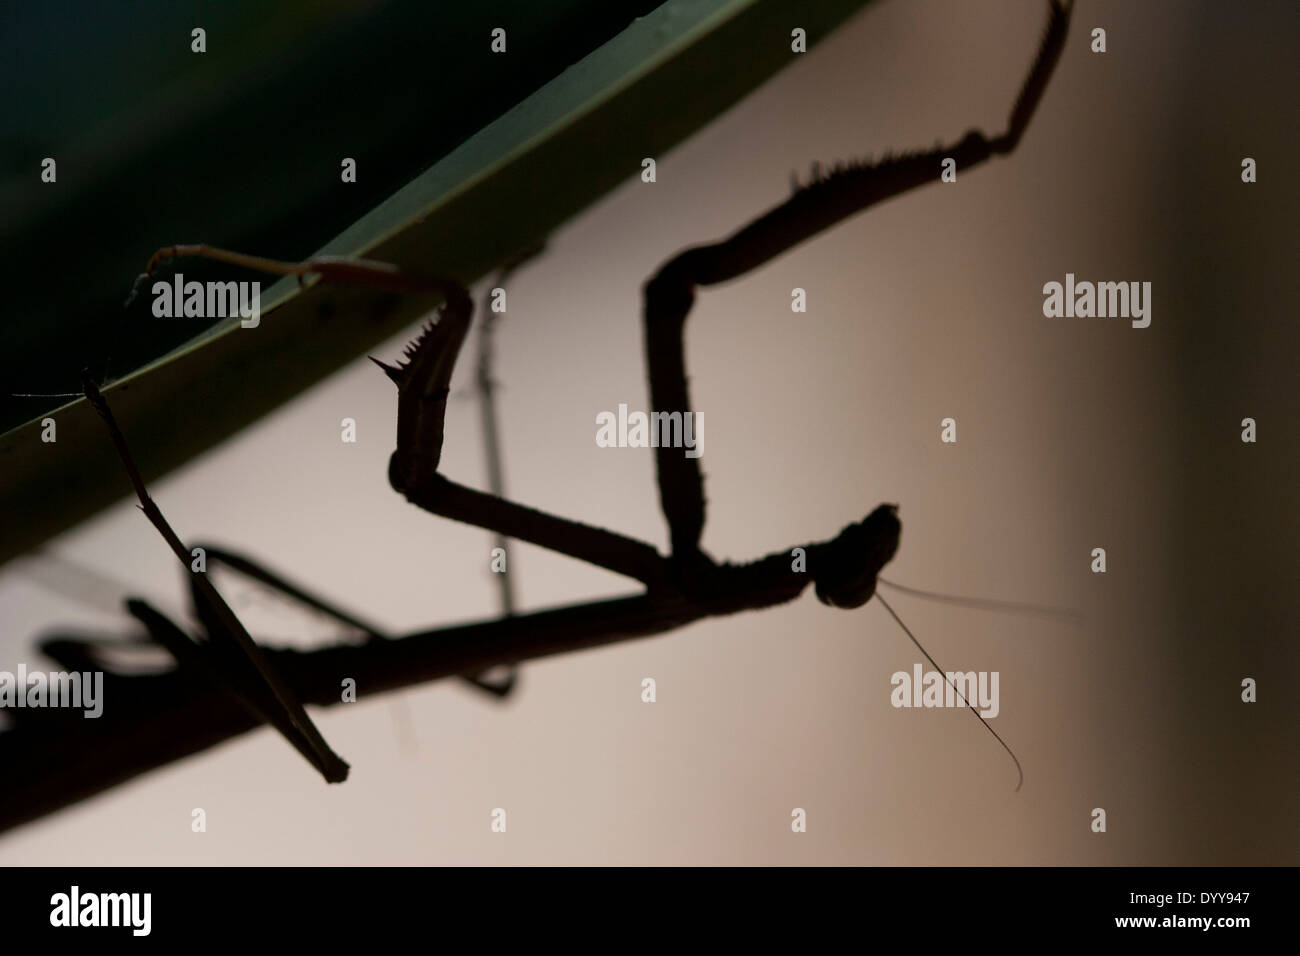 close up of preying mantis silhouette on a leaf backlit with a short depth of field - Stock Image